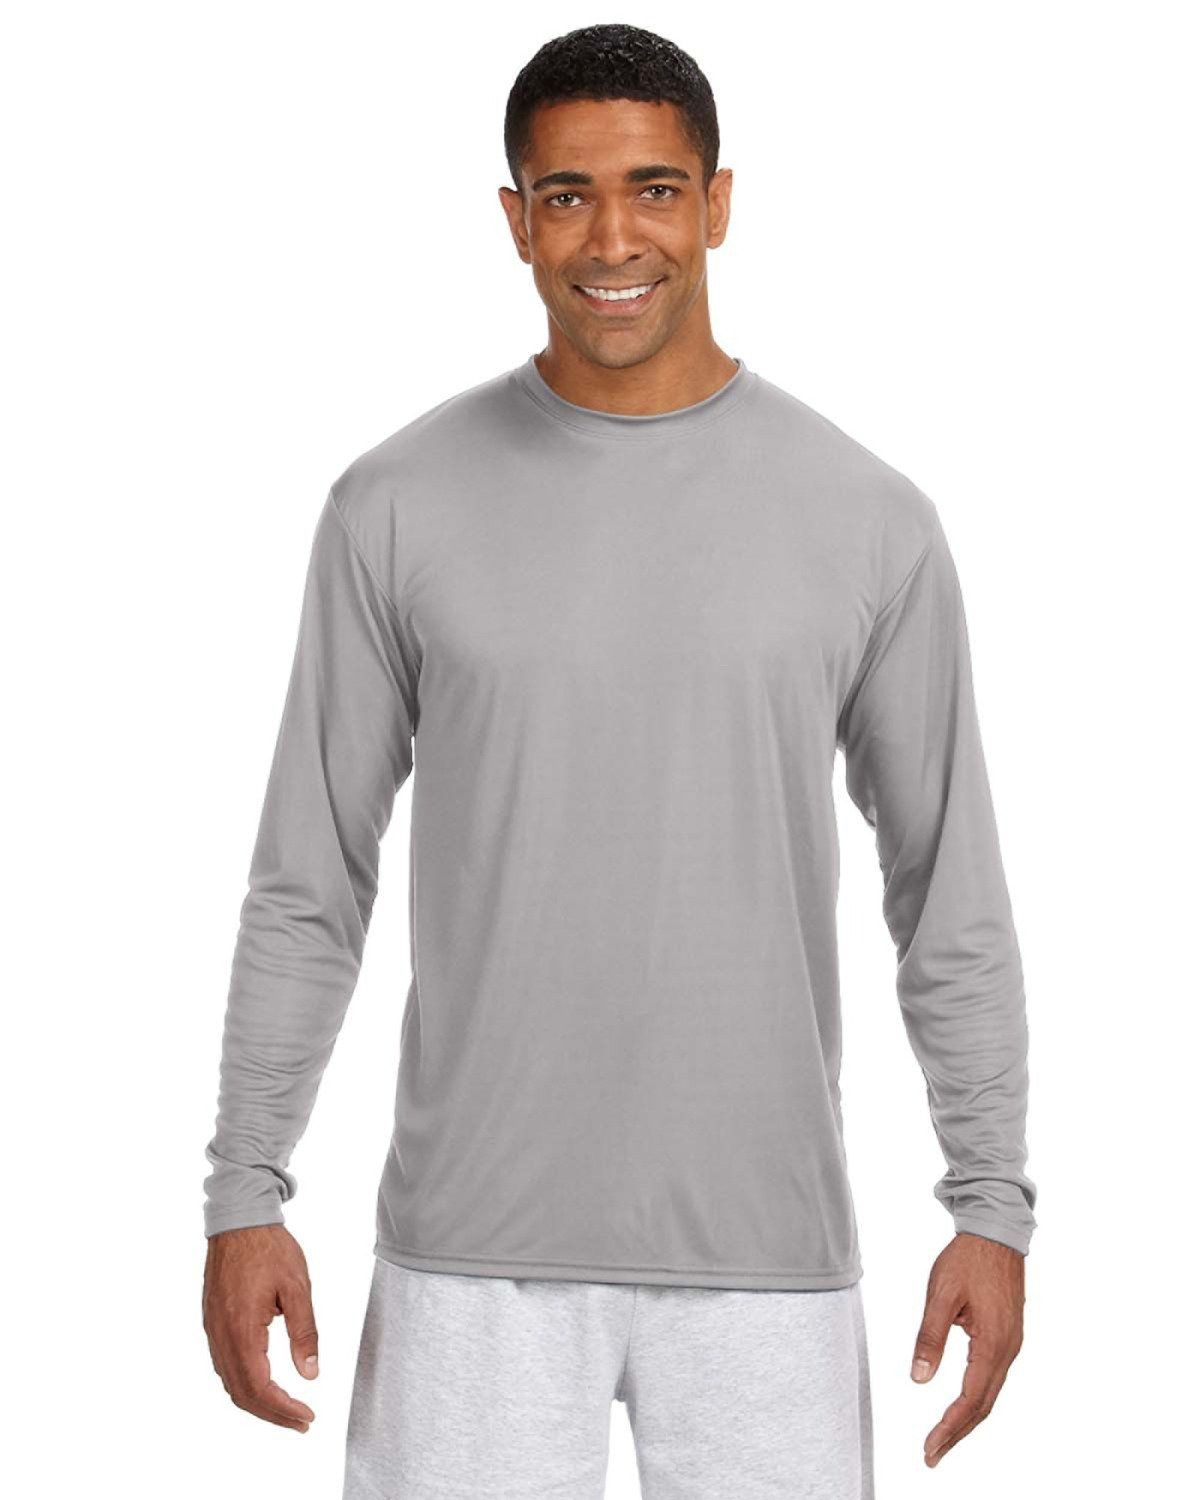 A4 Men's Cooling Performance Long Sleeve T-Shirt SILVER